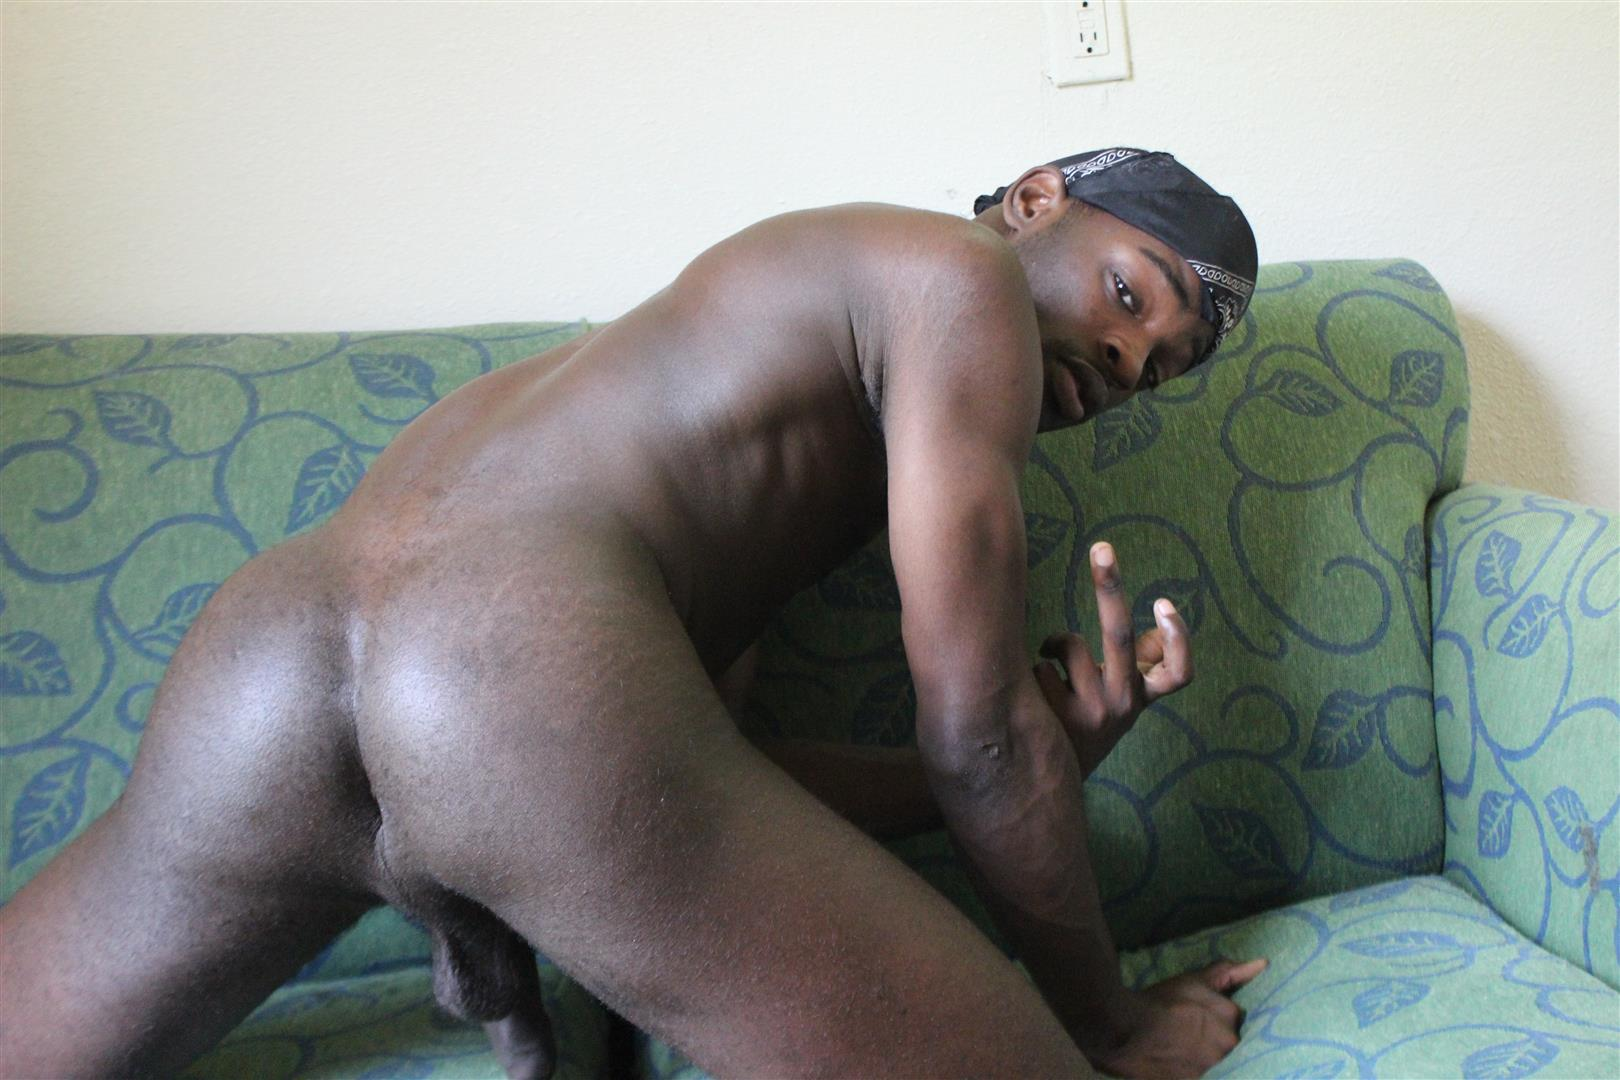 Traphouse Boys Brown and Carlos Big Black Cock Bareback Amateur Gay Porn 04 DL Thugs Barebacking With Their Big Uncut Black Dicks